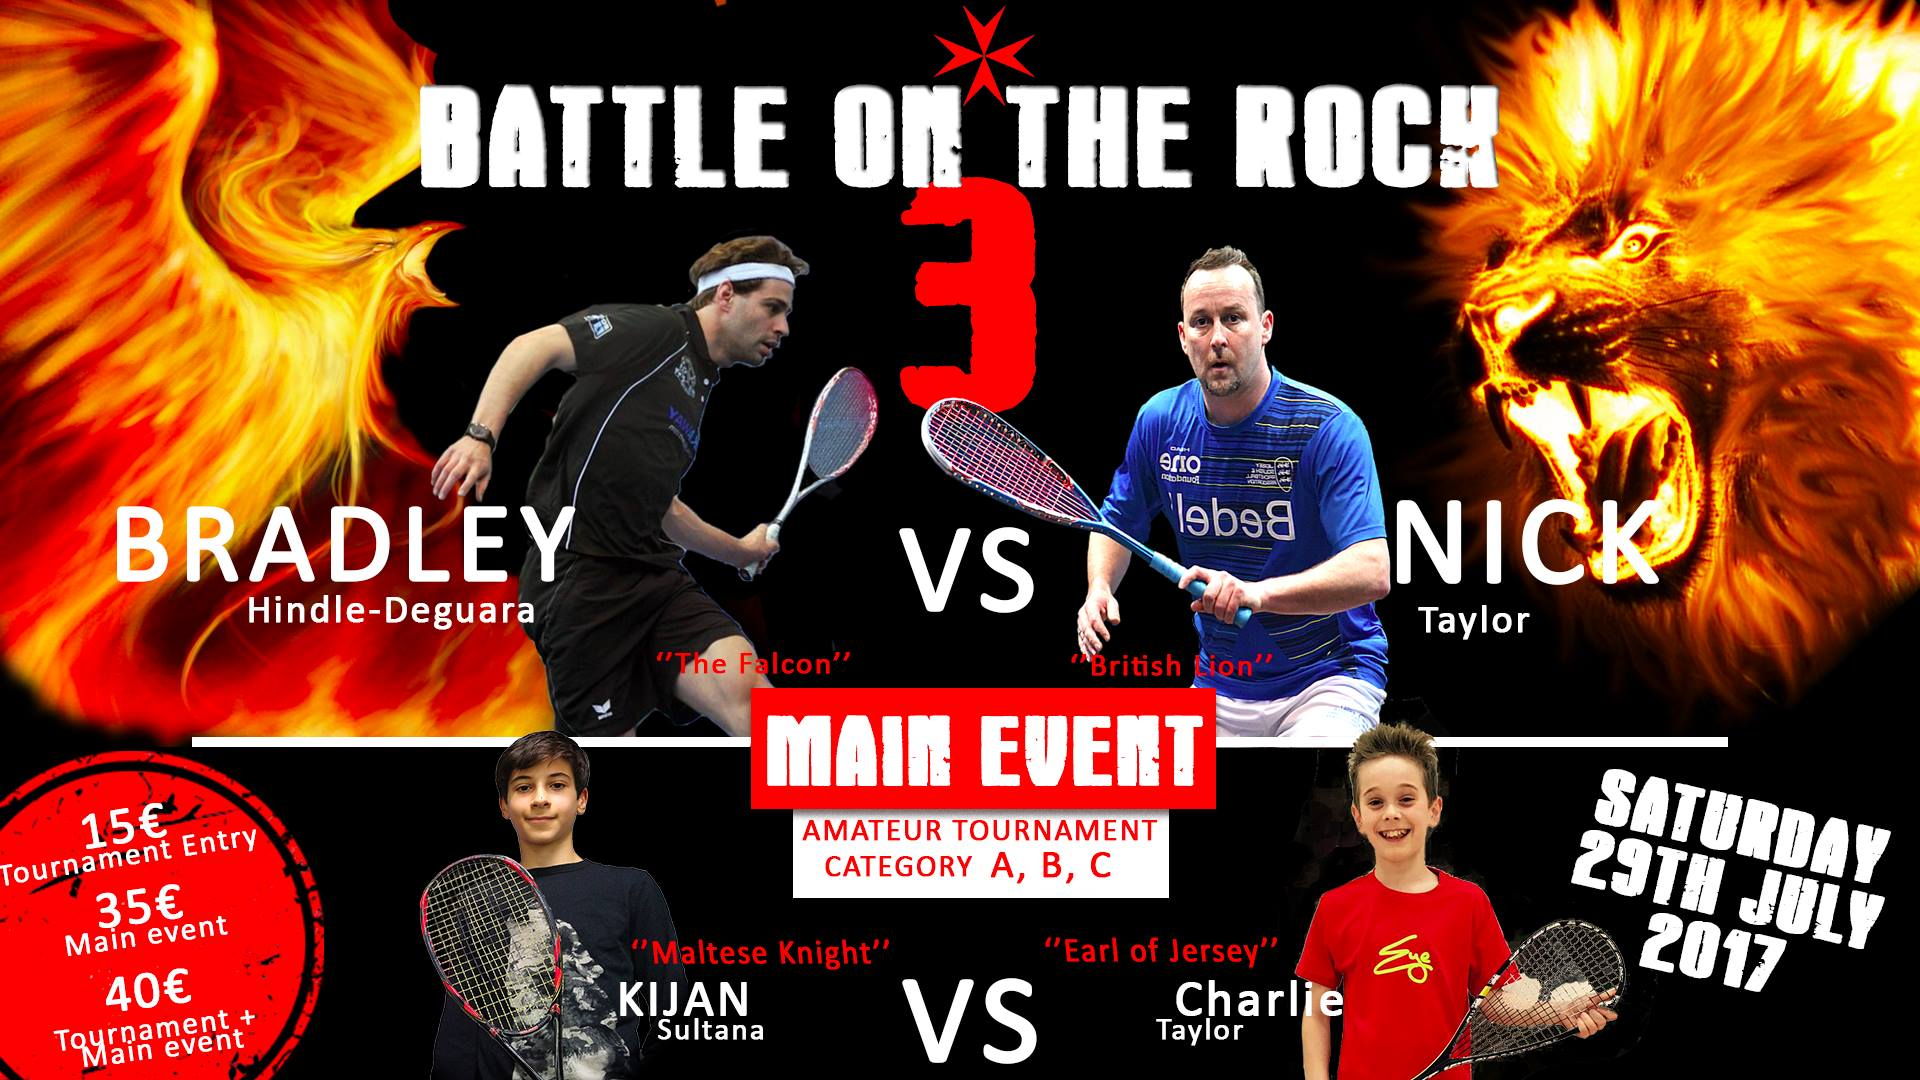 Battle of the Rock 3